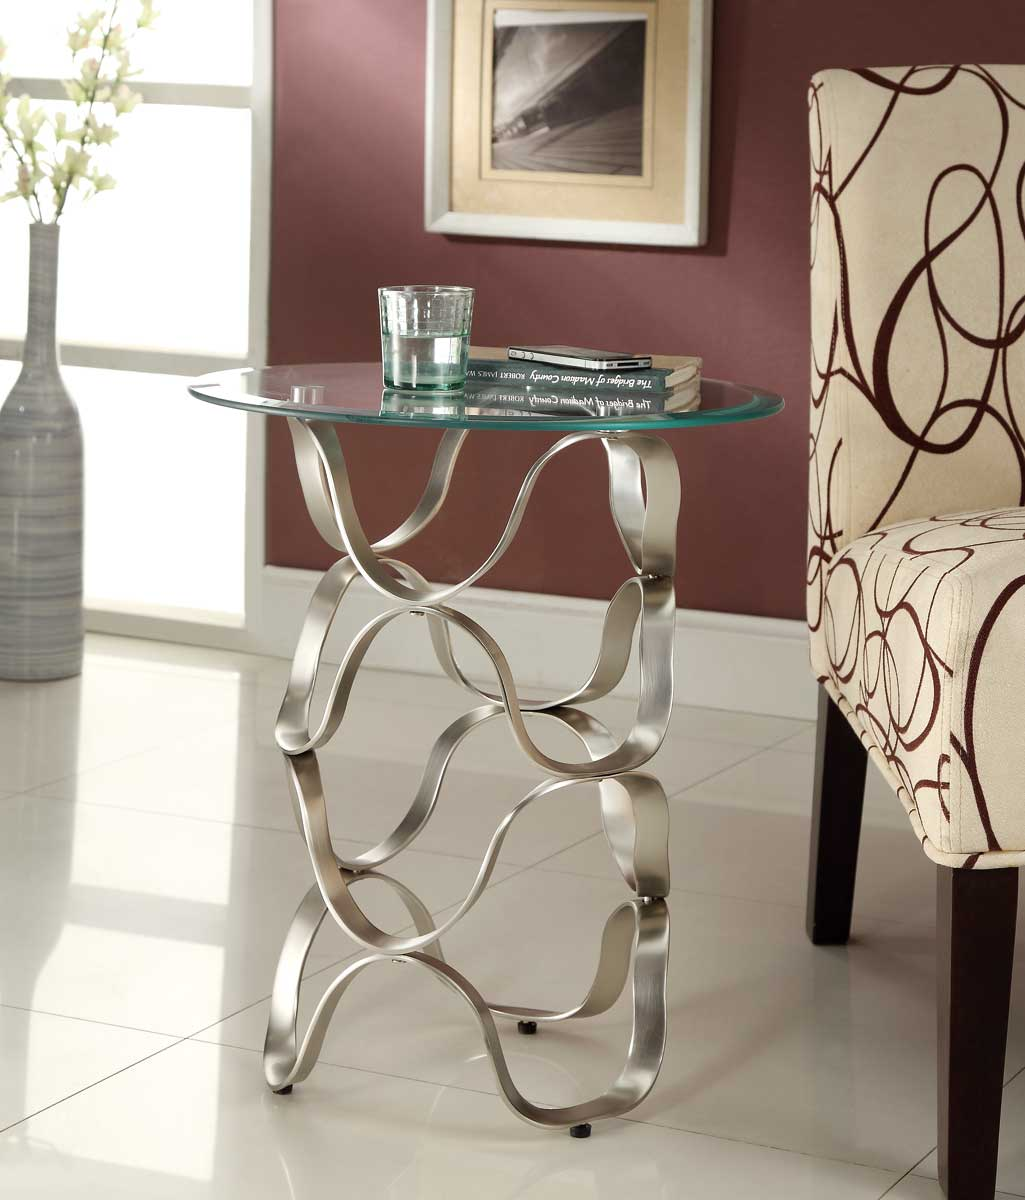 virtuemart_product_he-4766-02-side-table